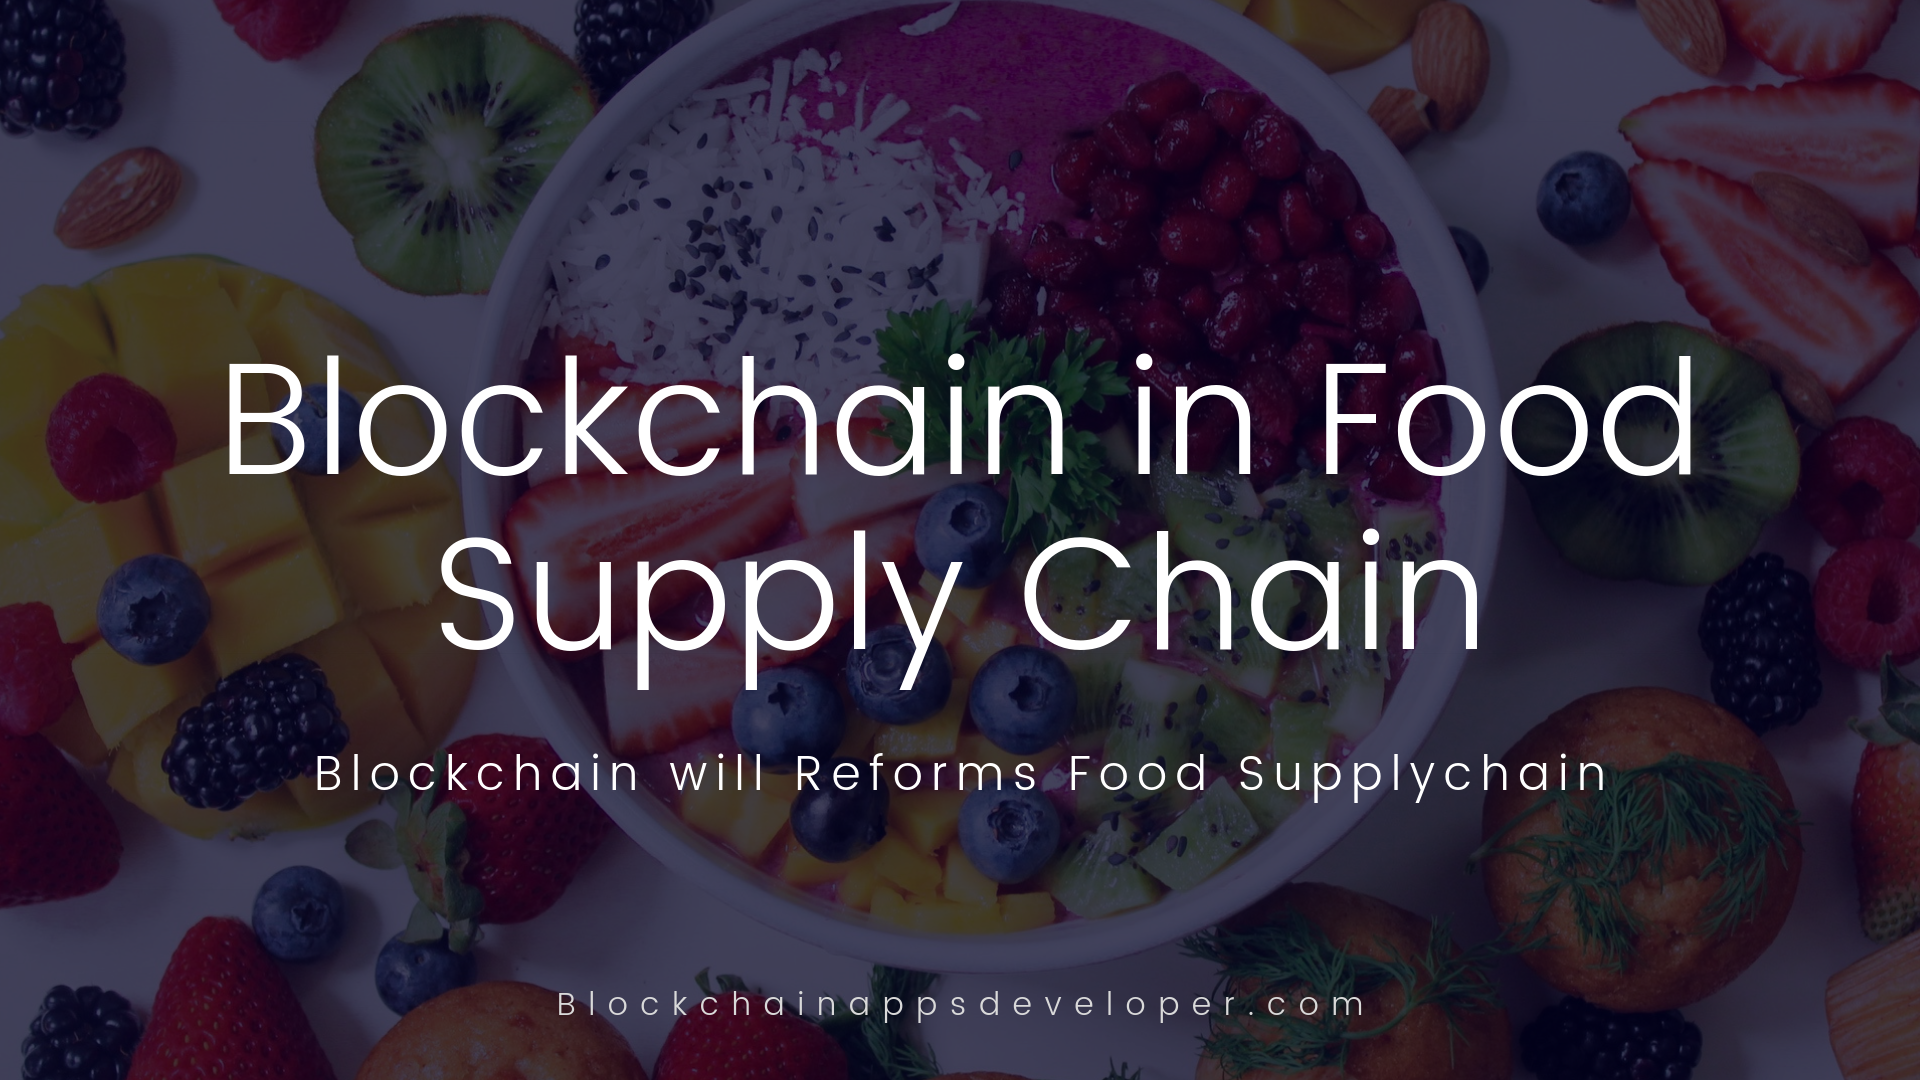 How Blockchain Reform Food Supply Chain?